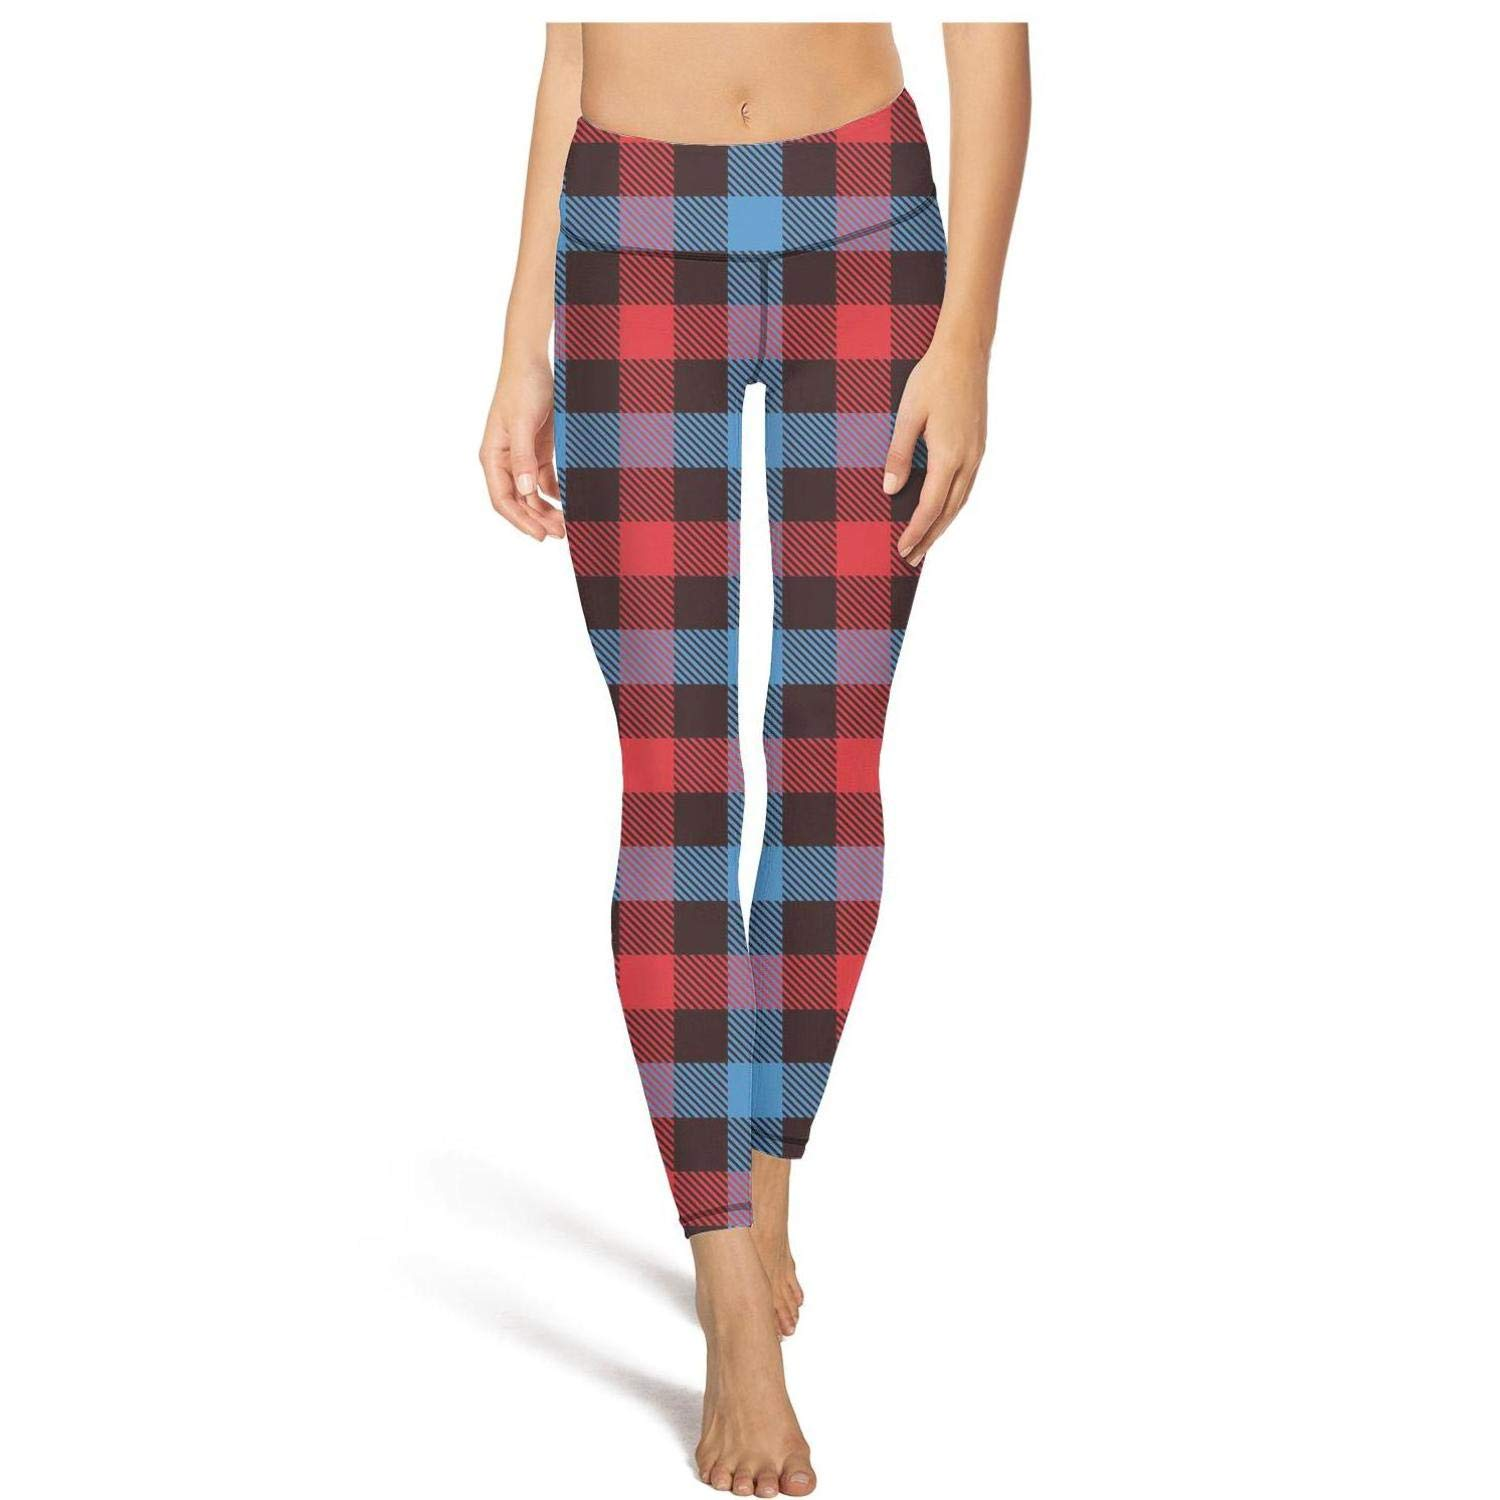 ccceaae6d7a4c Blue Red Checkerboard British Plaid Leggins Workout Outfits for Women at  Amazon Women's Clothing store: